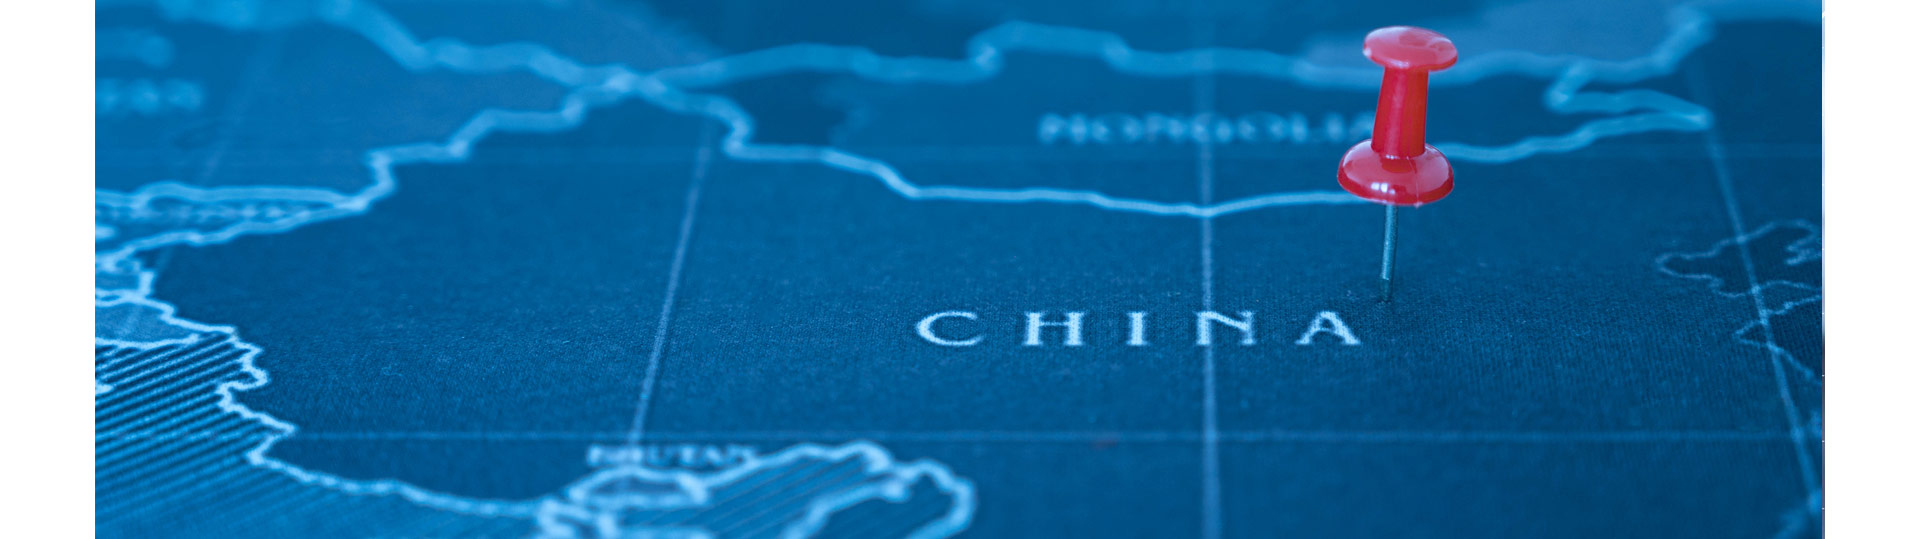 Establishing a Center of Excellence - CoE - for China eCTD Submissions - Celegence